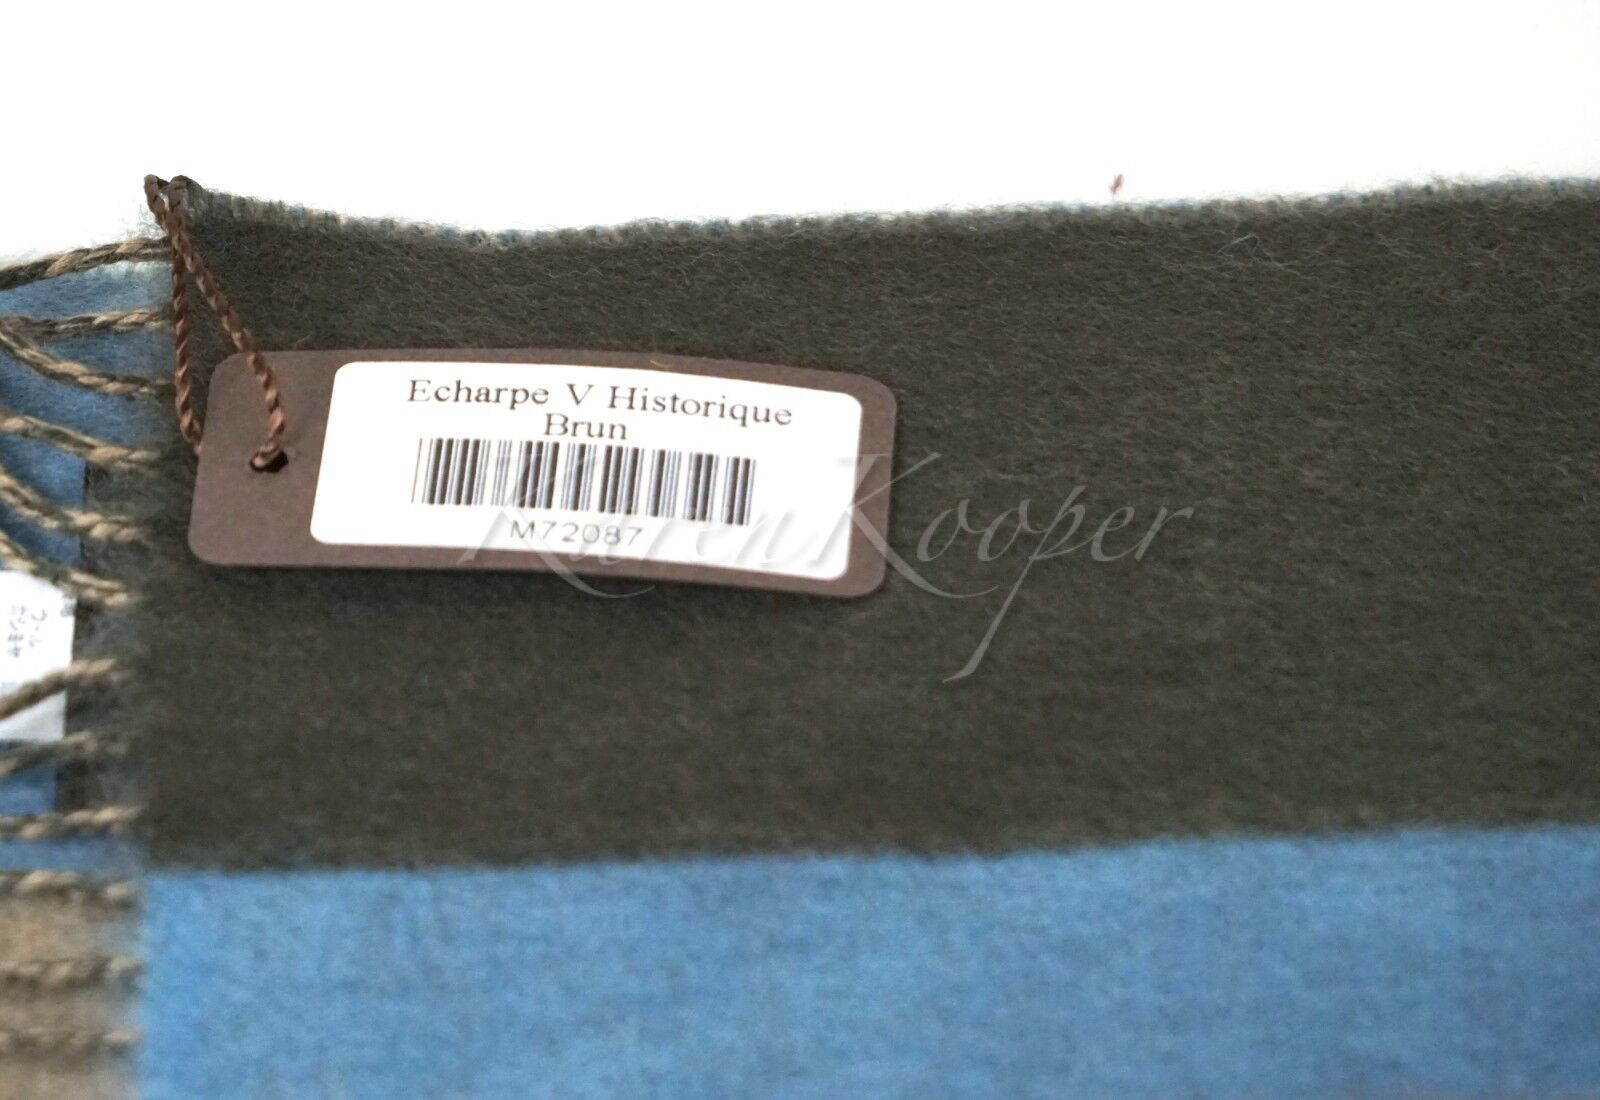 51040d10f83 Мужской шарф AUTHENTIC LOUIS VUITTON V HISTORIQUE CASHMERE SCARF NEW WITH  TAGS